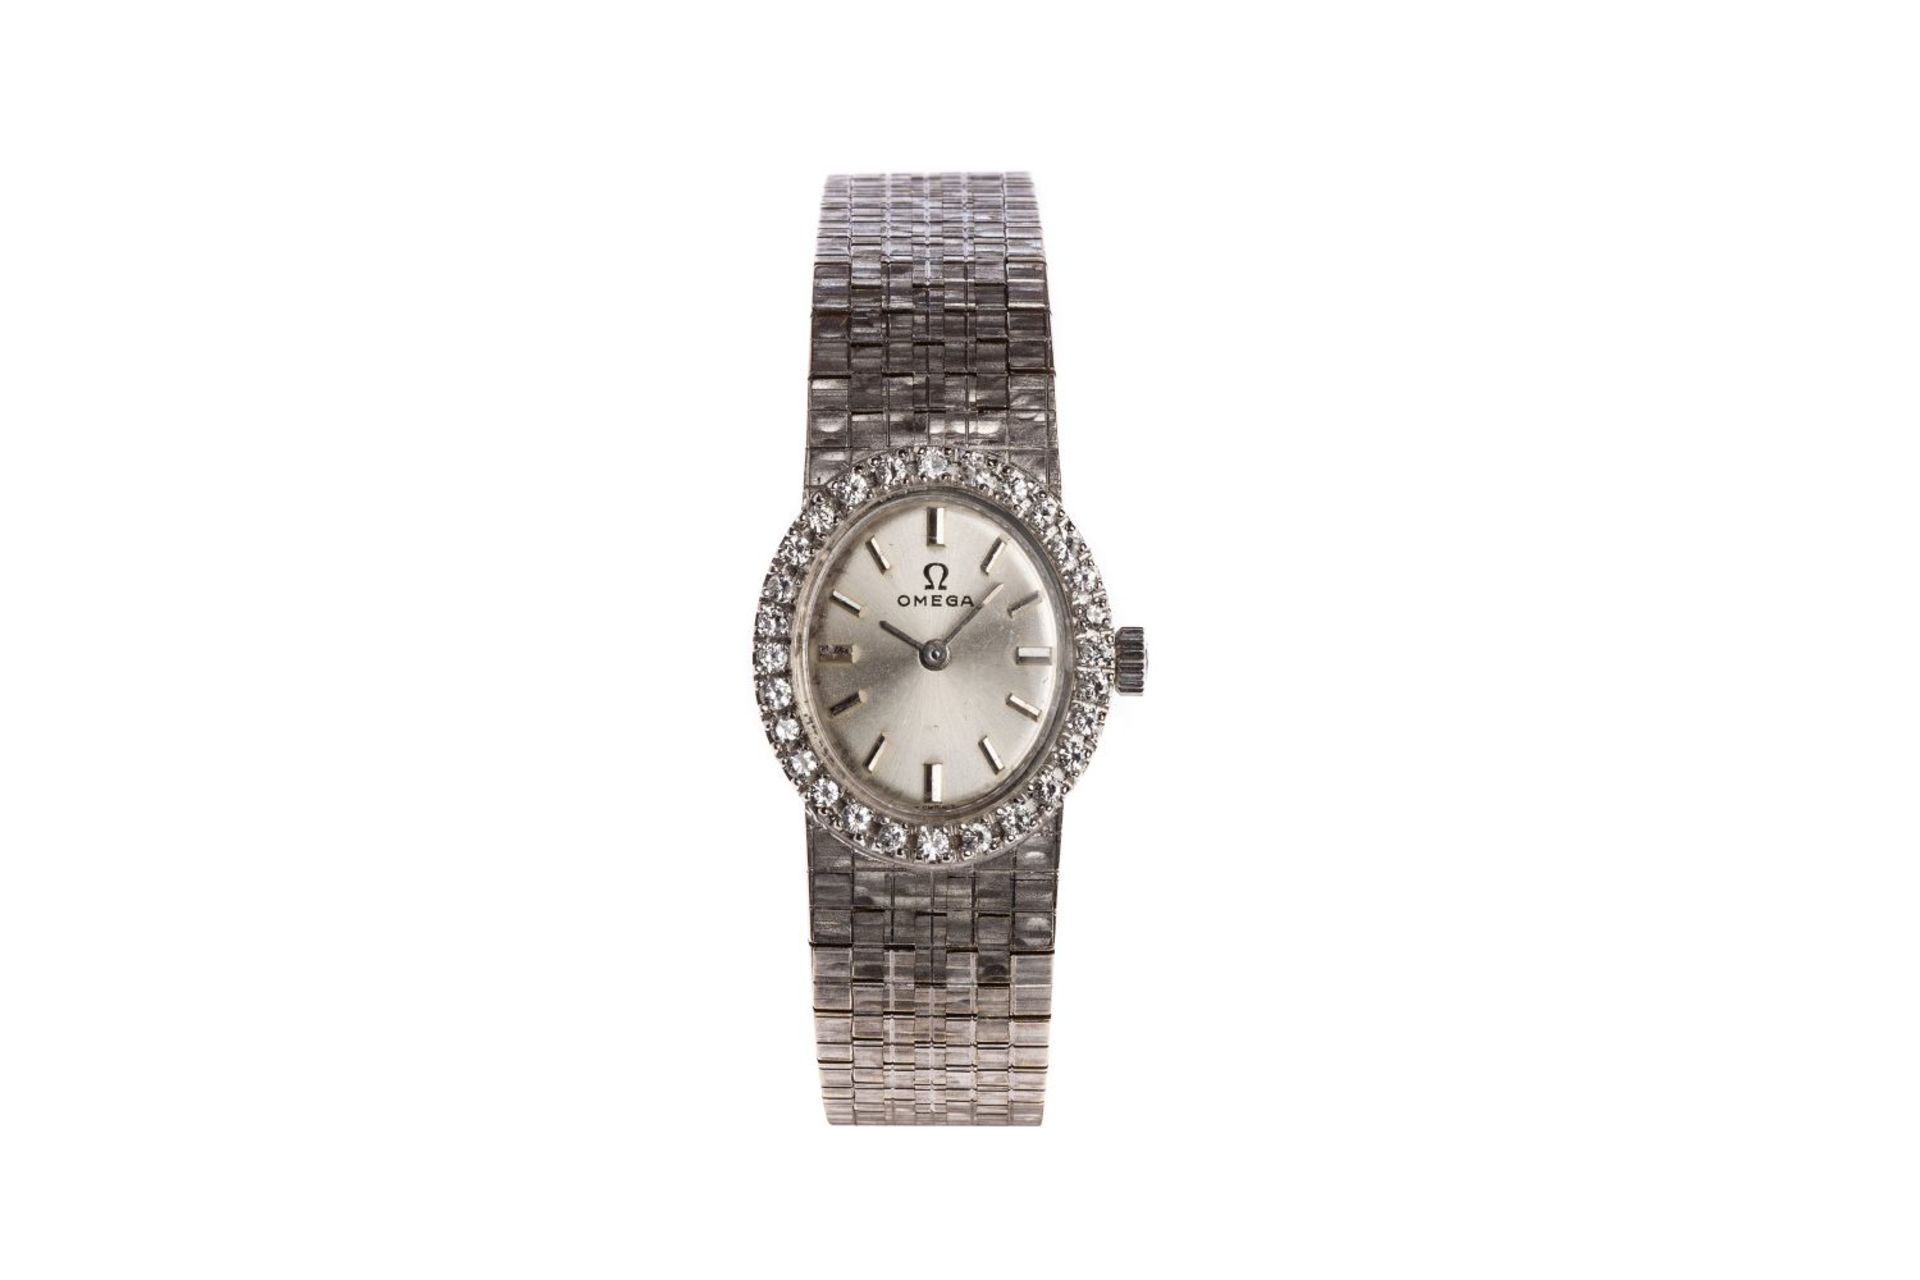 Los 86 - Omega whitegold ladies watch18kt white gold ladies' watch handwinding from the 70s with daimond